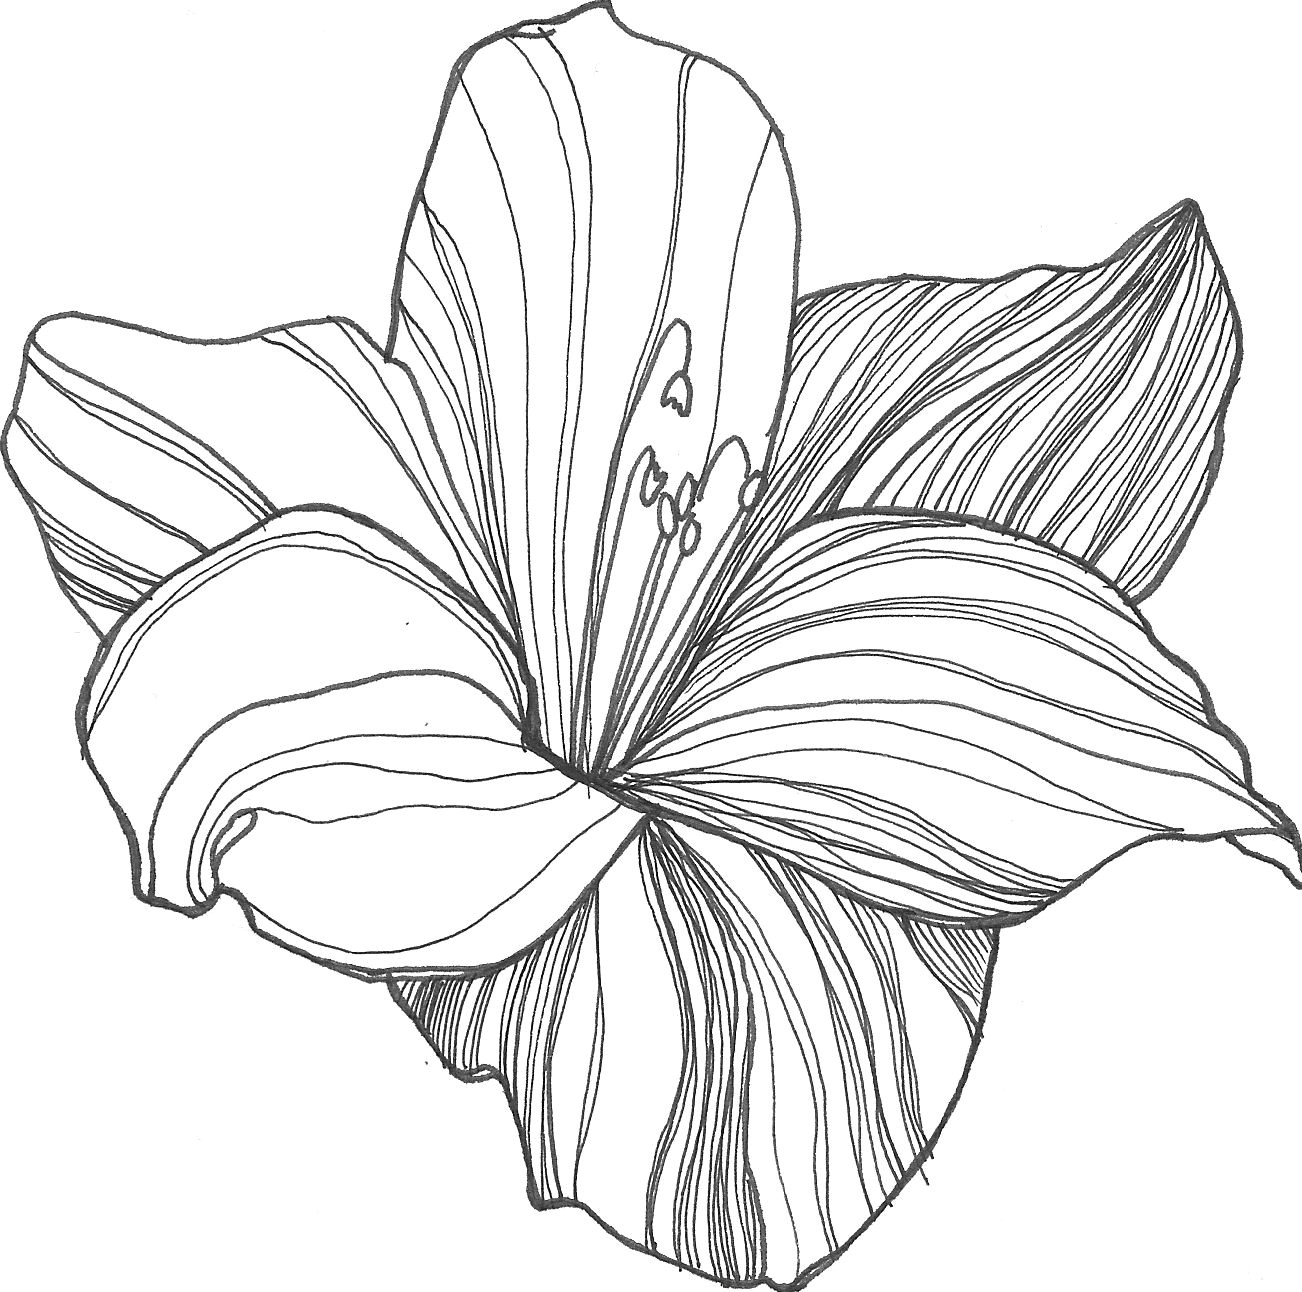 Drawings Of Lily Flowers Nicole Illustration Flower Power Patterns Drawings Flowers